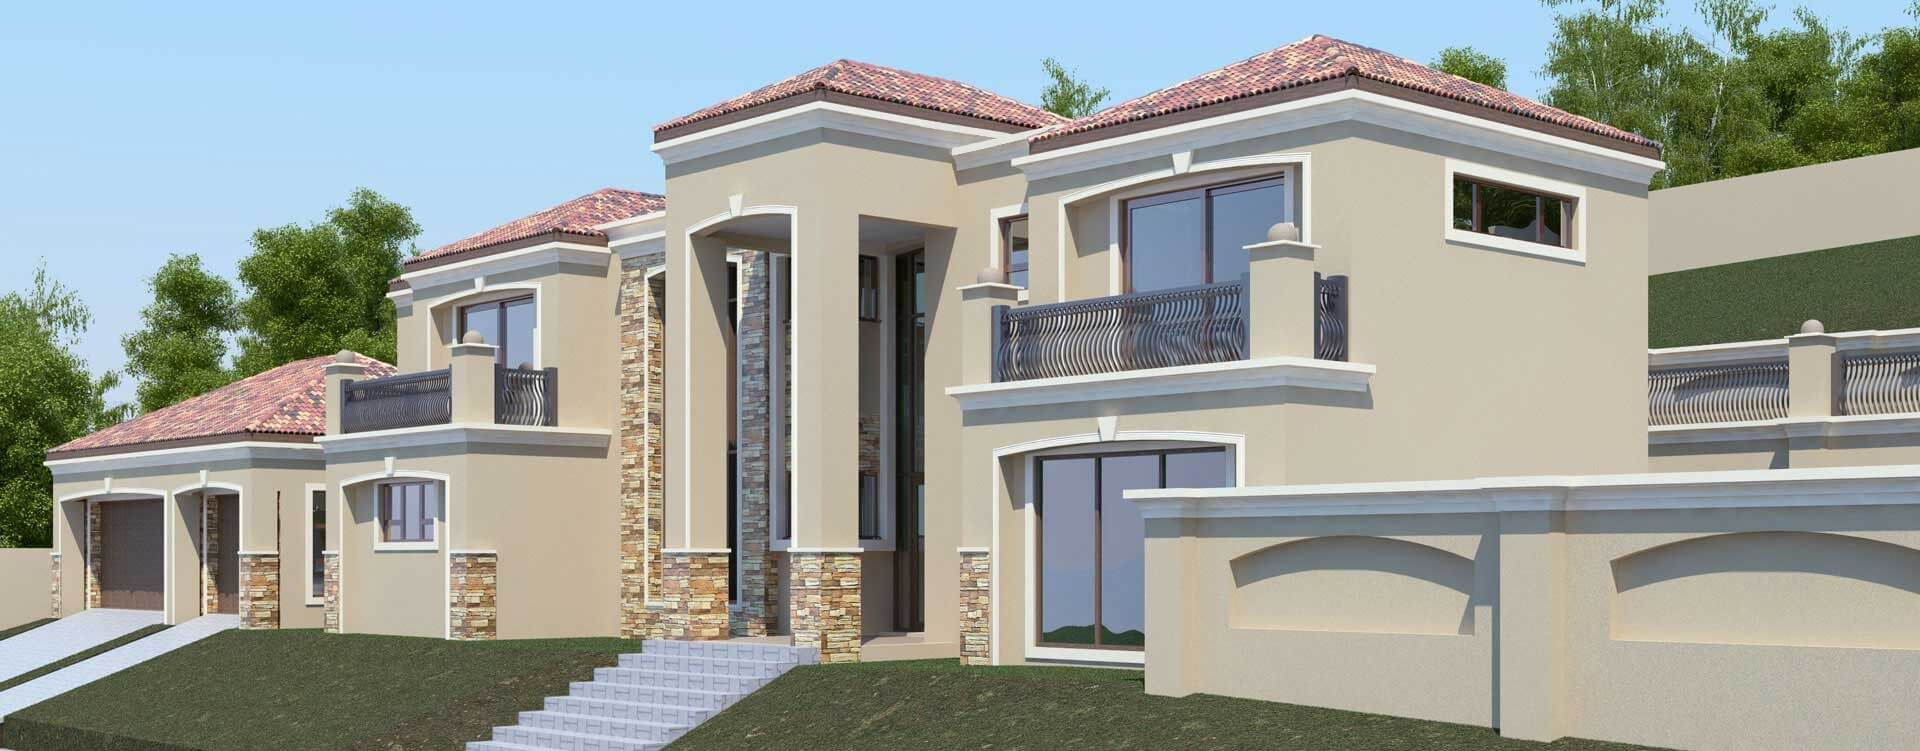 Modern Tuscan style  5 bedroom house plan Double storey floor plans Nethouseplans architectural House Plans For Sale Online Designs And